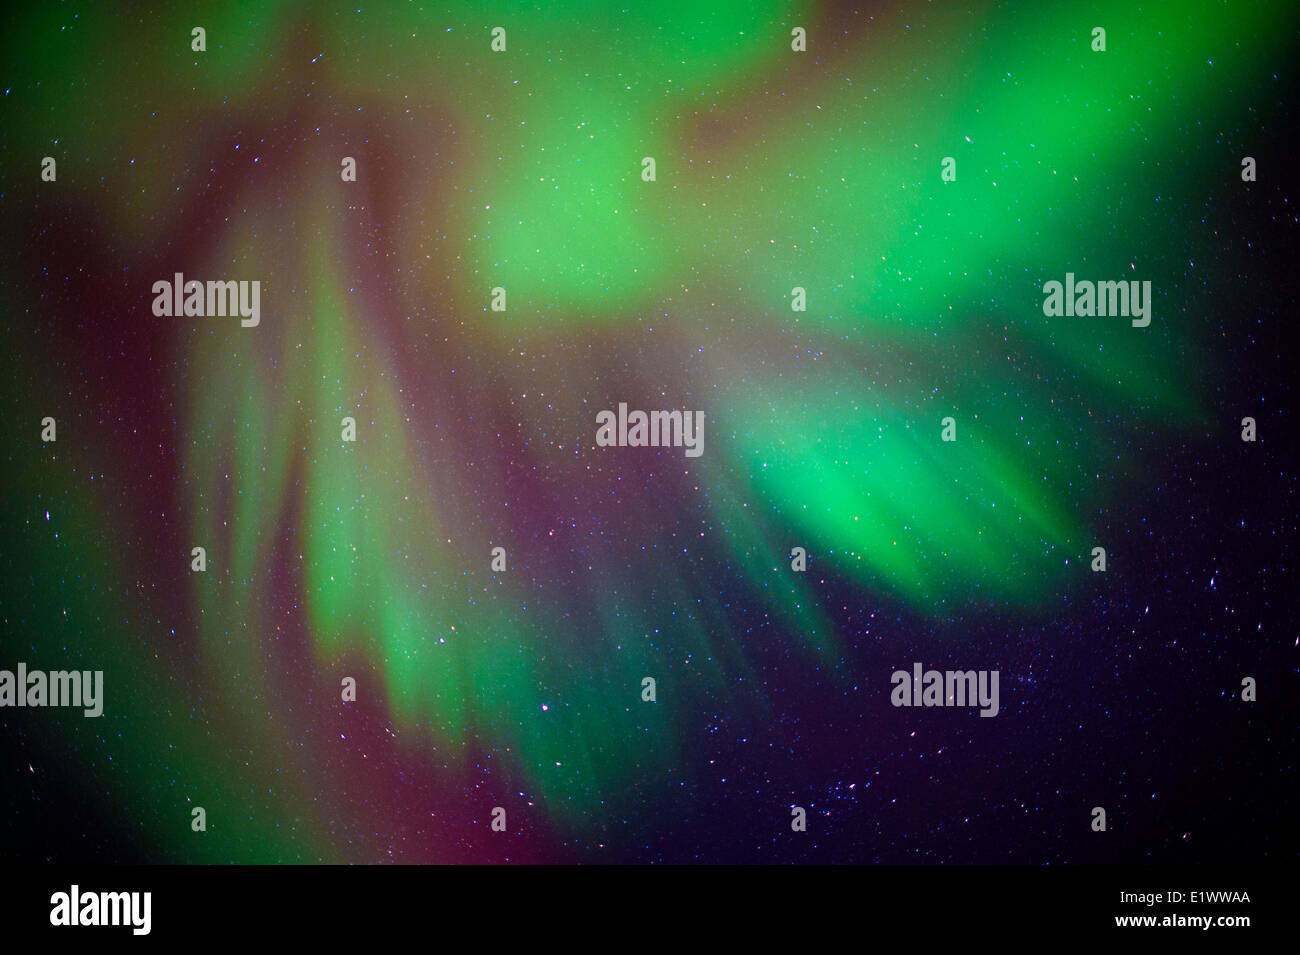 Aurora borealis (northern lights), boreal forest, Yellowknife environs, NWT, Canada - Stock Image